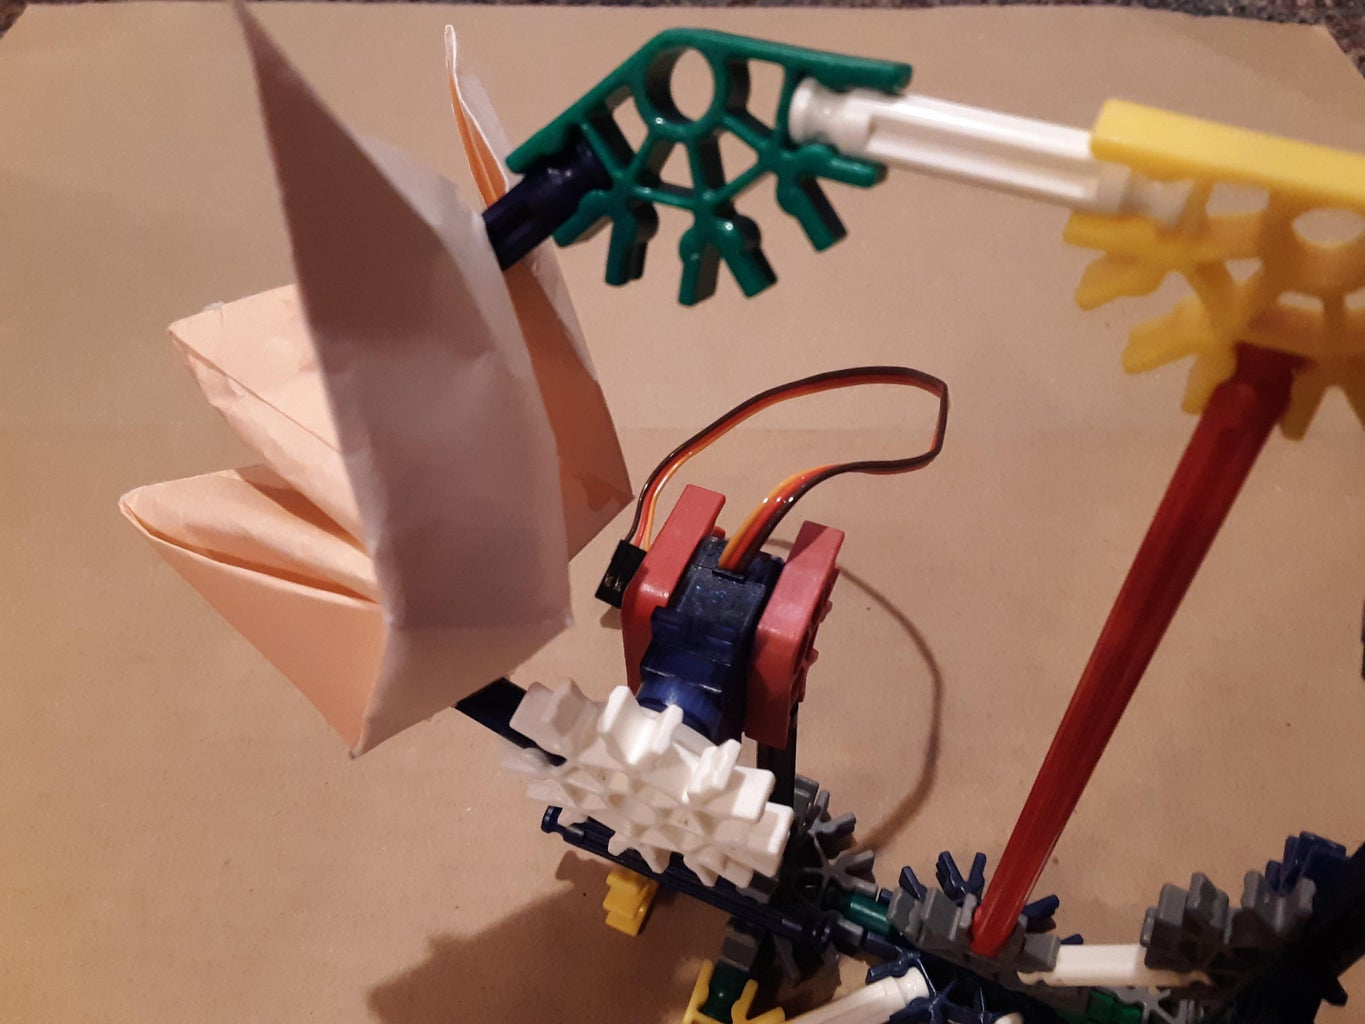 Install the Origami Fox Assembly